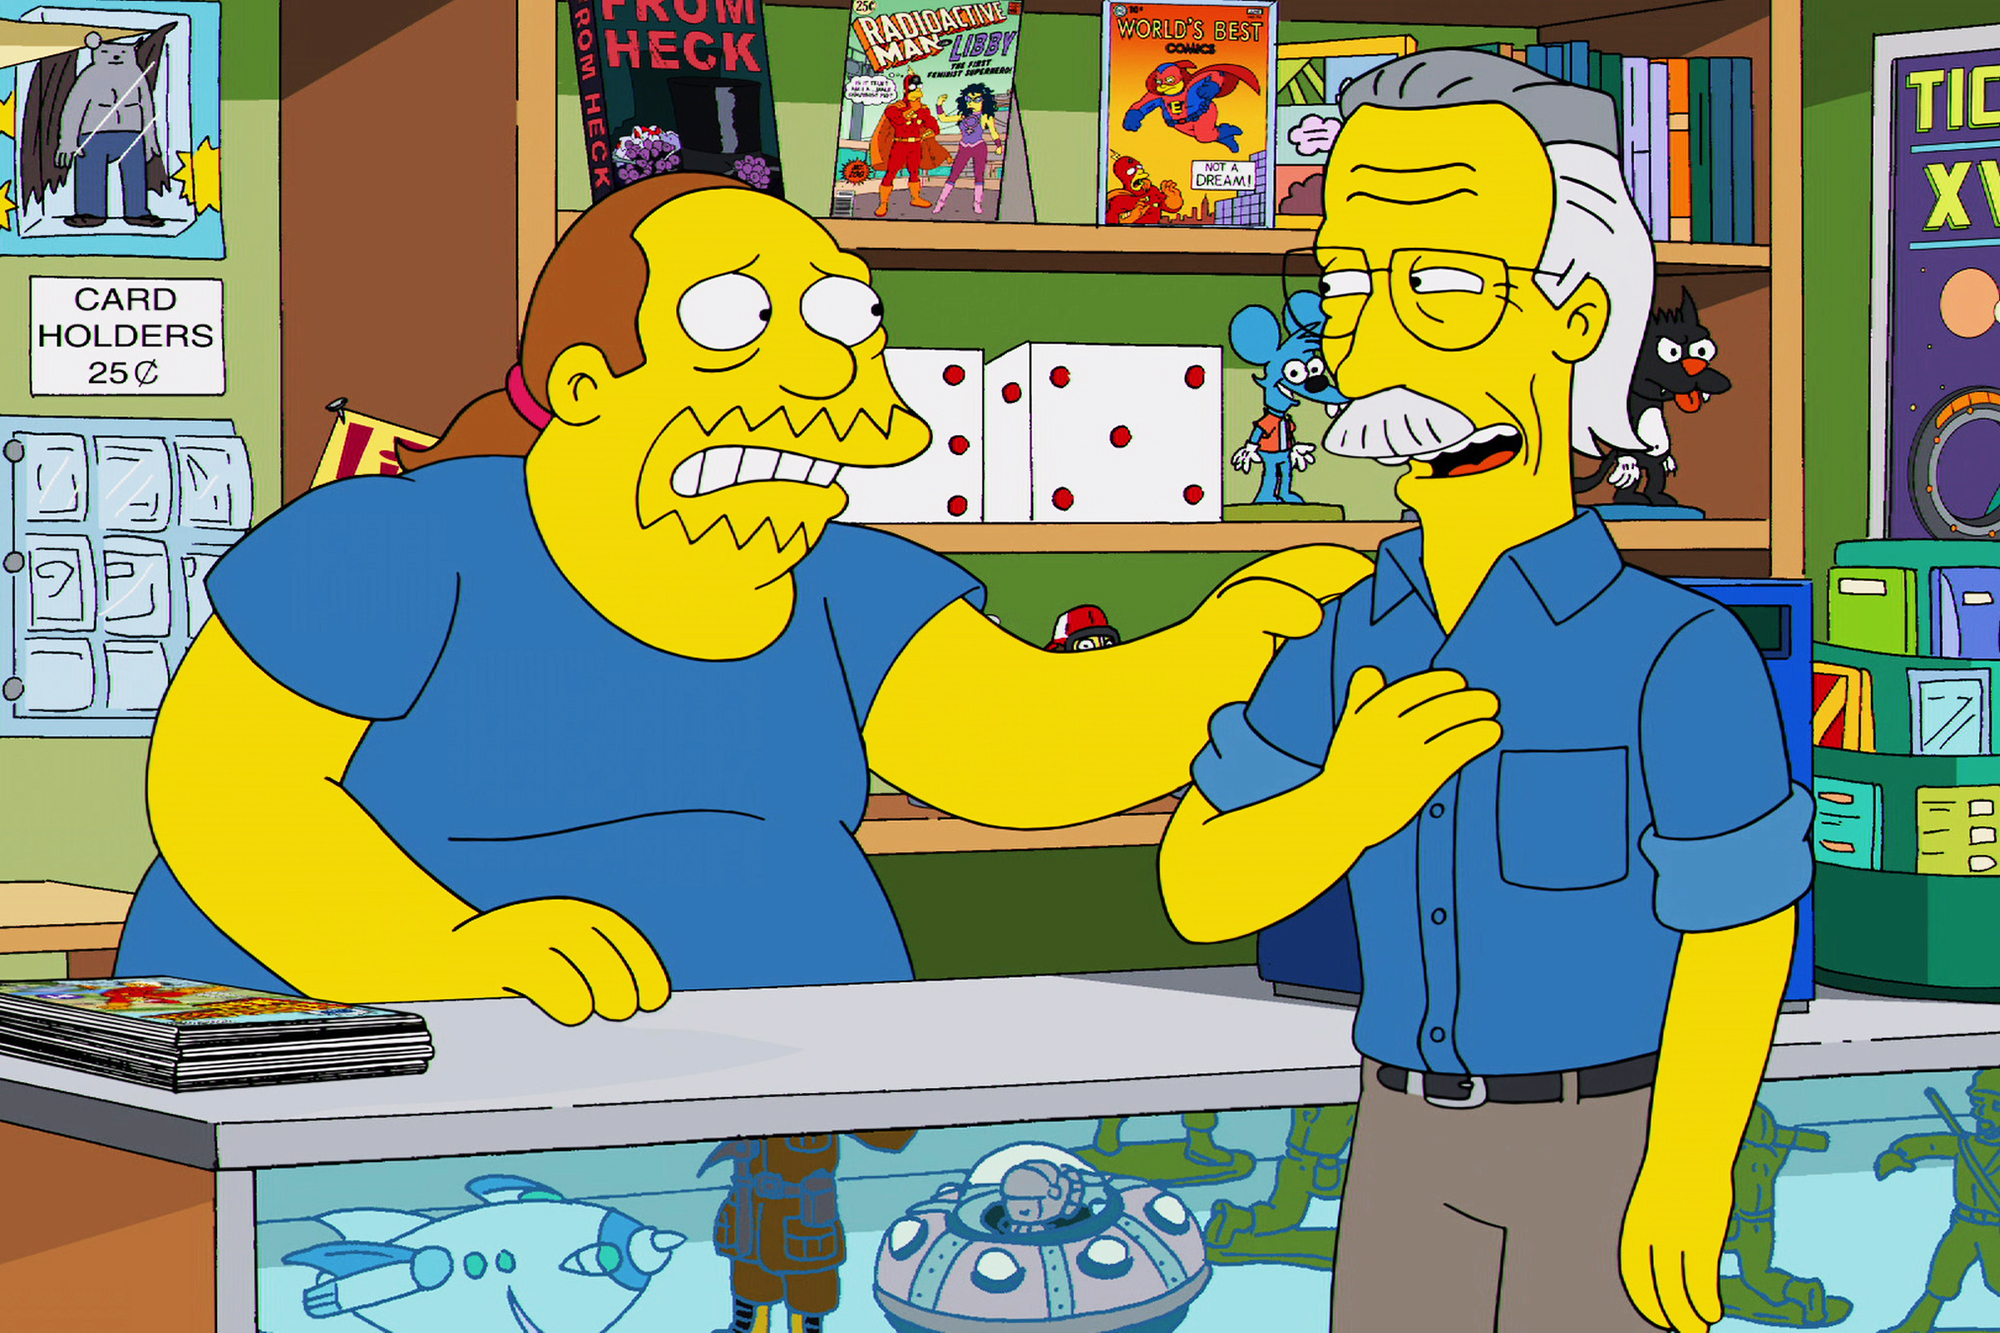 """<b>Stan Lee:</b> The real Stan Lee first guest starred as himself in """"I Am Furious (Yellow)"""" in 2002. He later paid Comic Book Guy a visit, in the tenth episode of the 25th season, """"Married to the Blob."""" He also made an appearance in """"The Caper Chase"""" in 2017 during the opening couch gag."""